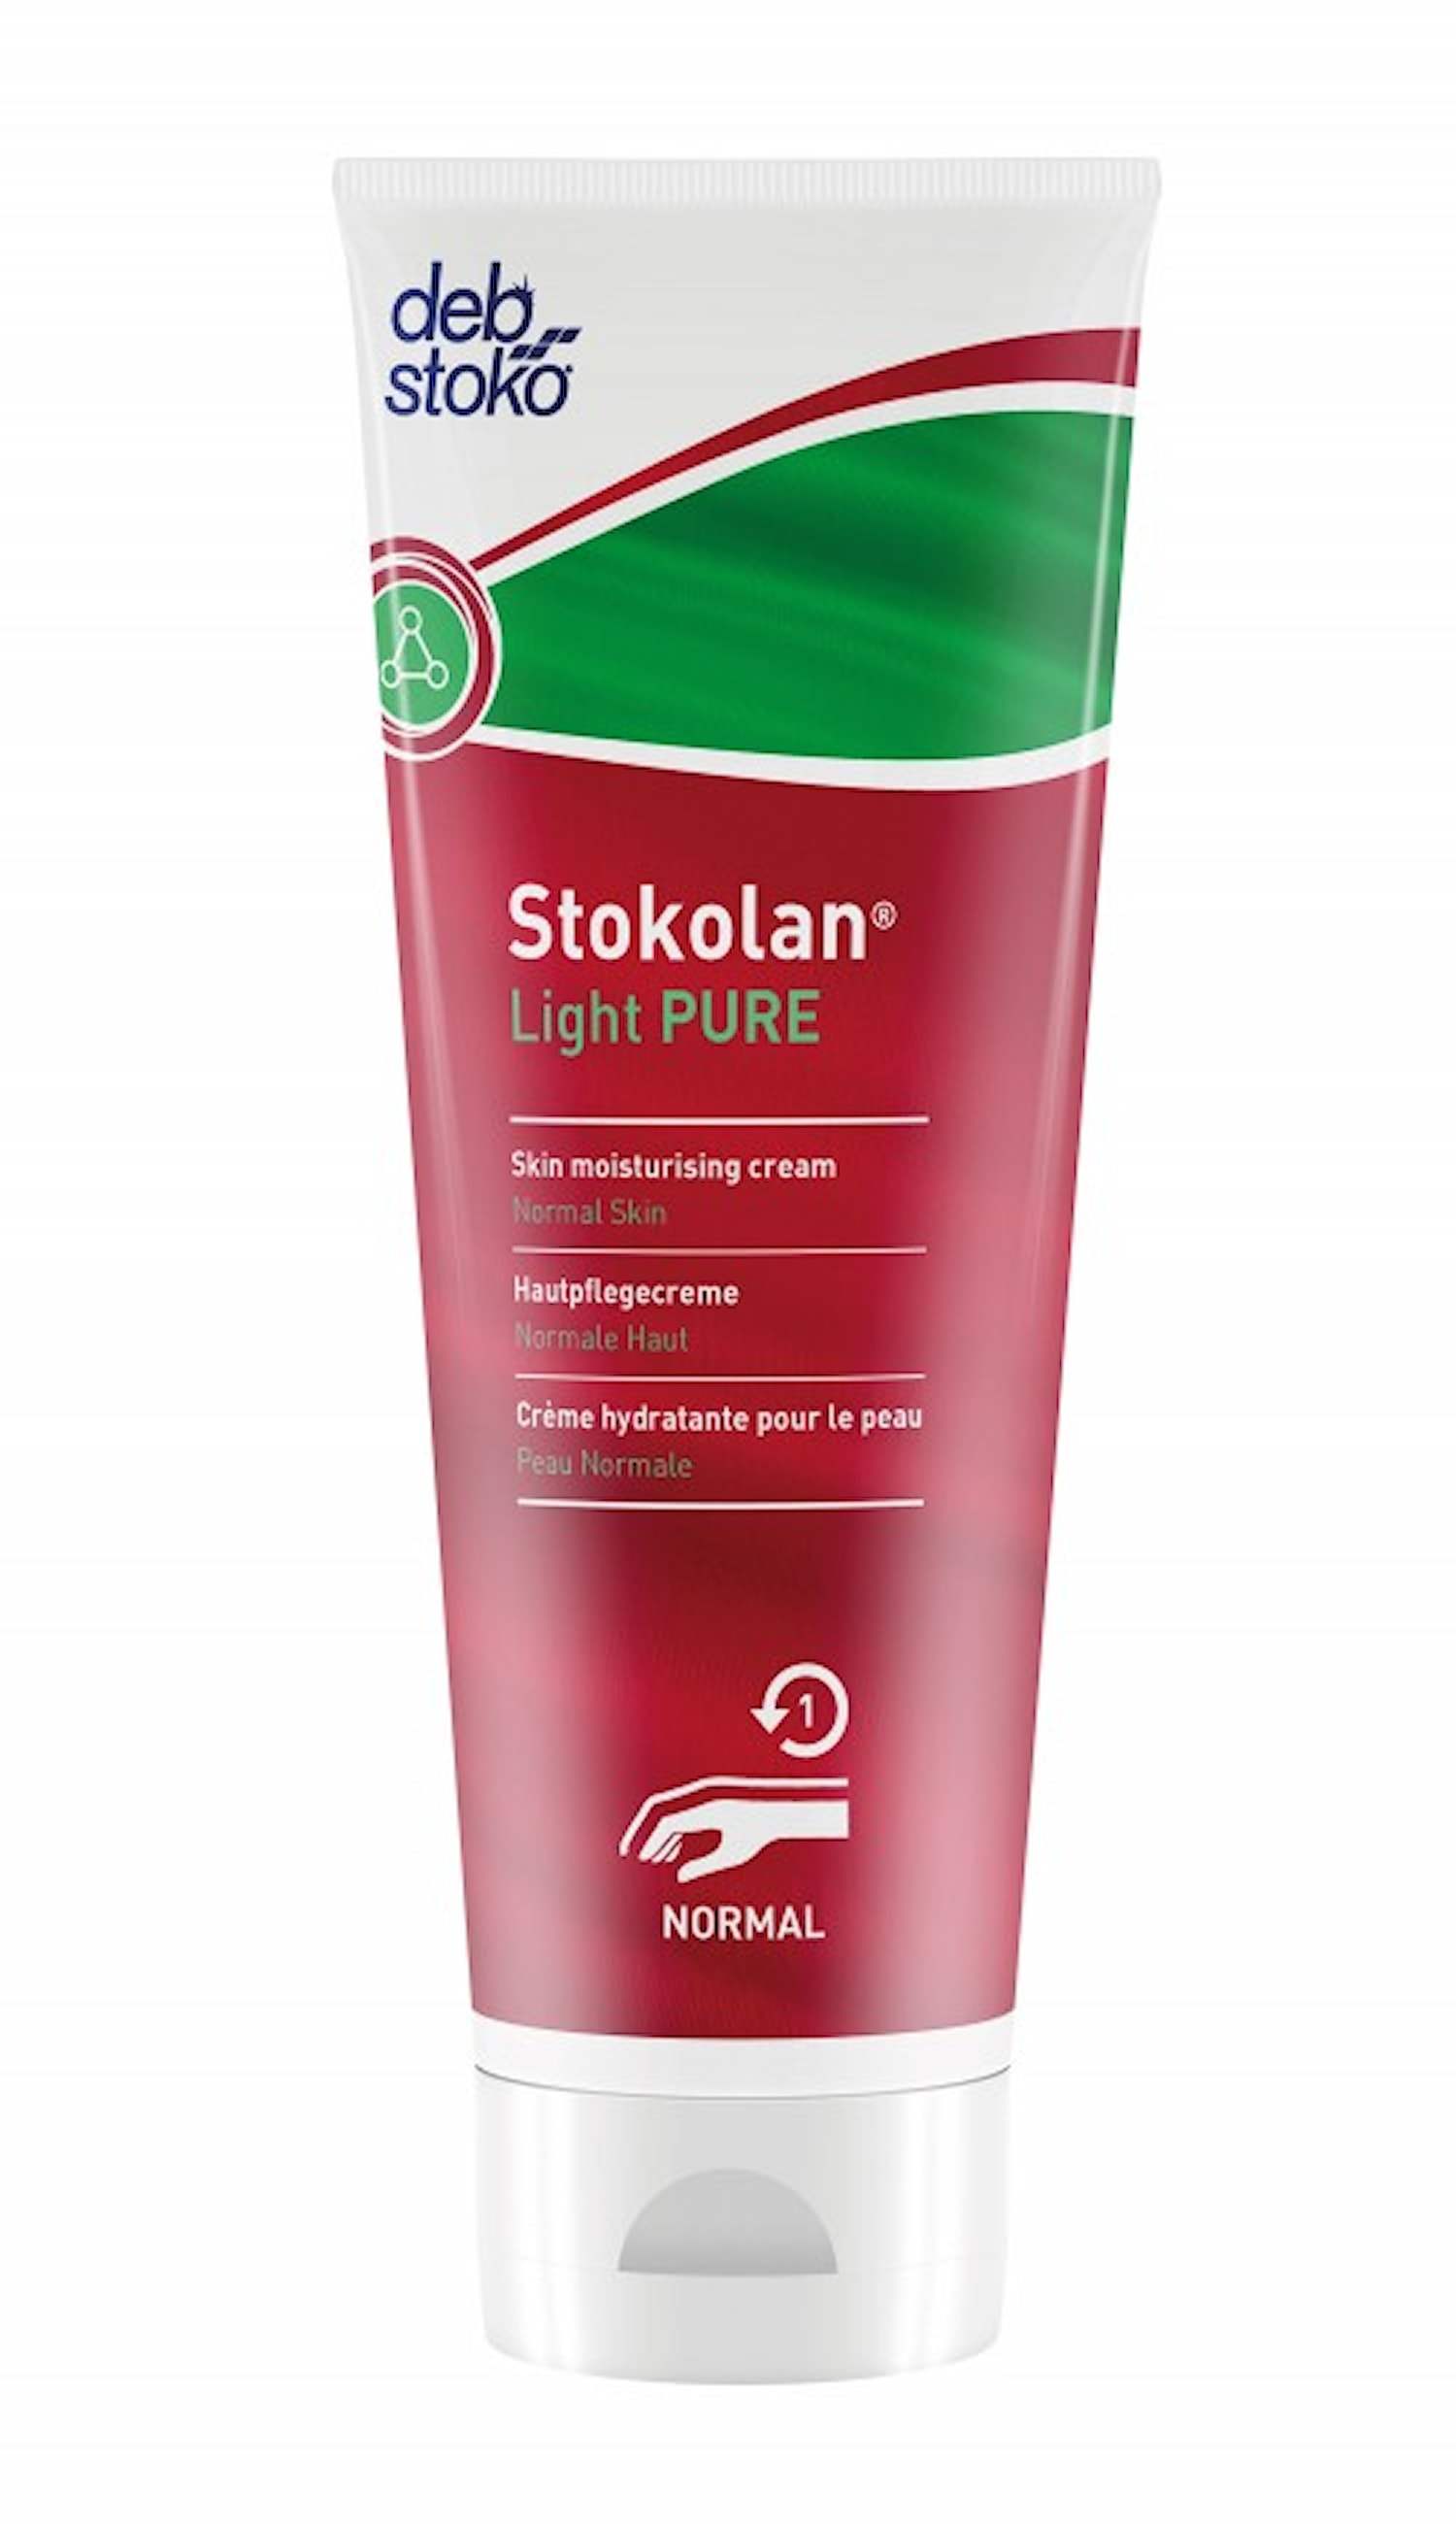 Stokolan Light Pure